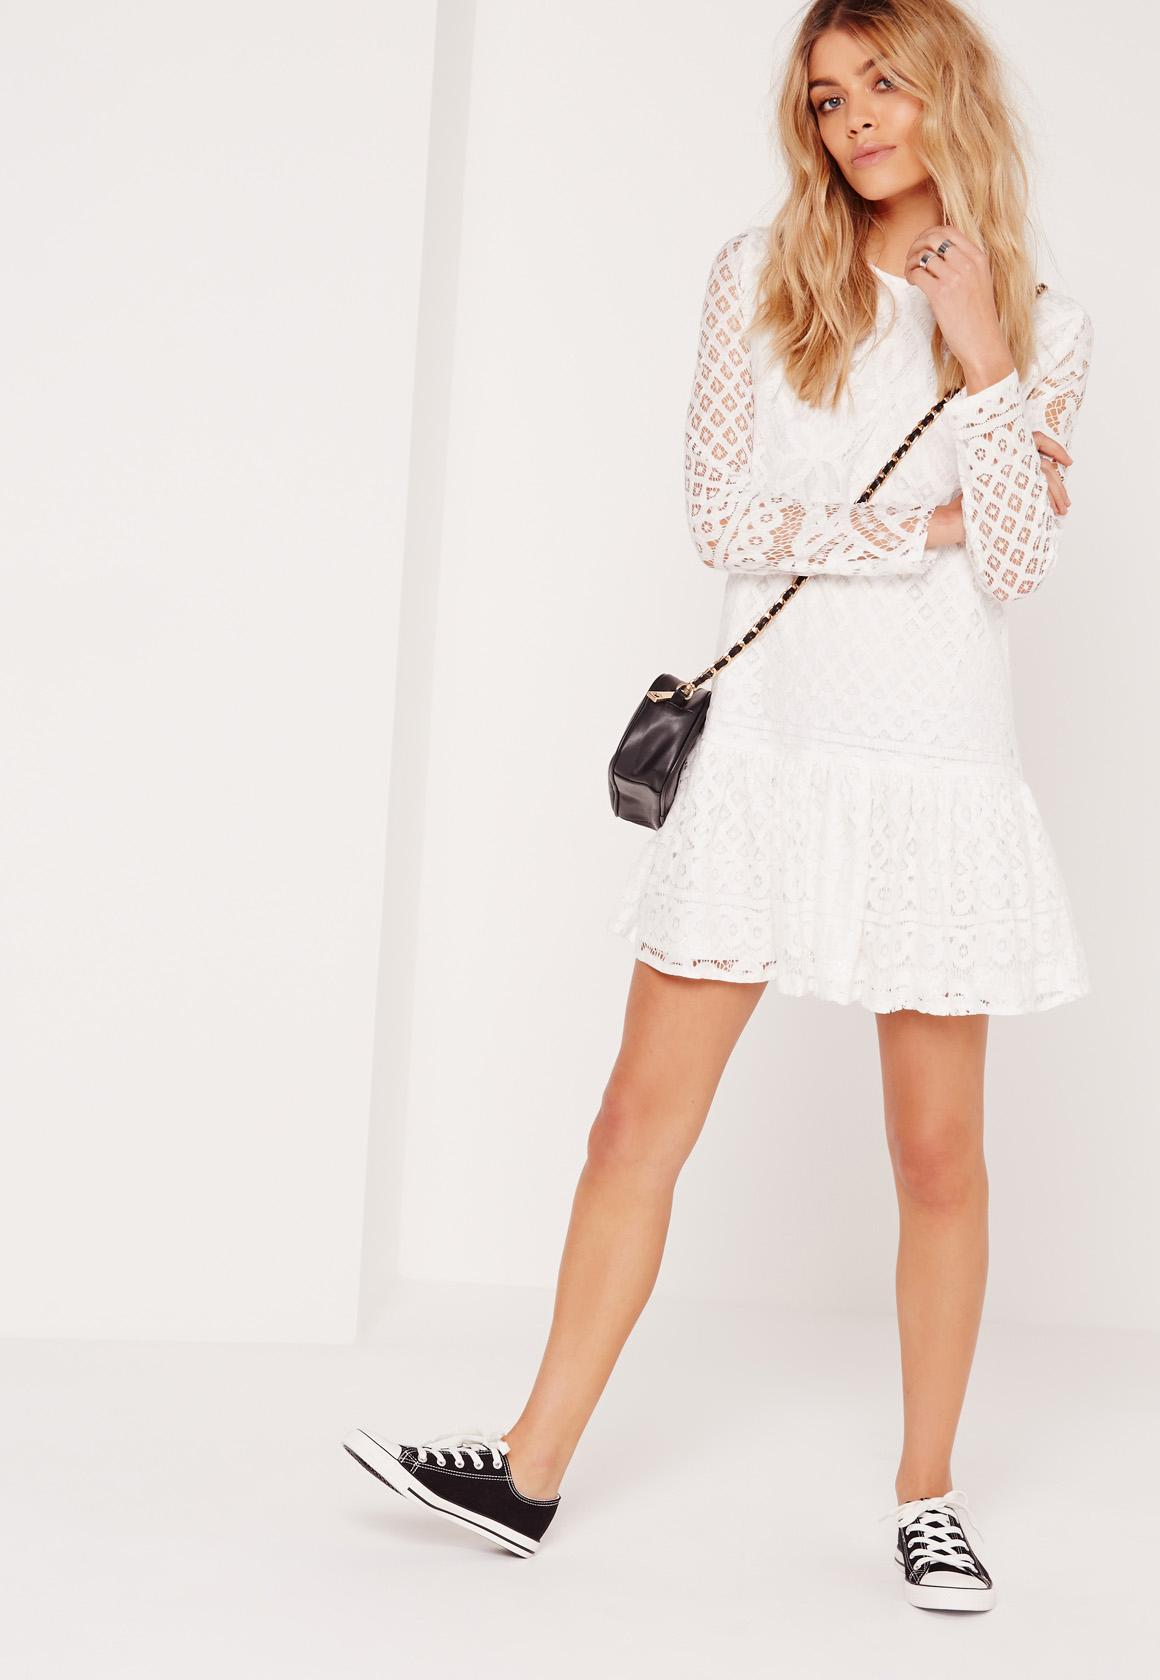 Missguided Lace Frill Long Sleeved Dress Sale Prices Free Shipping Pay With Paypal New Arrival For Sale Cheap Websites bNIeJiA